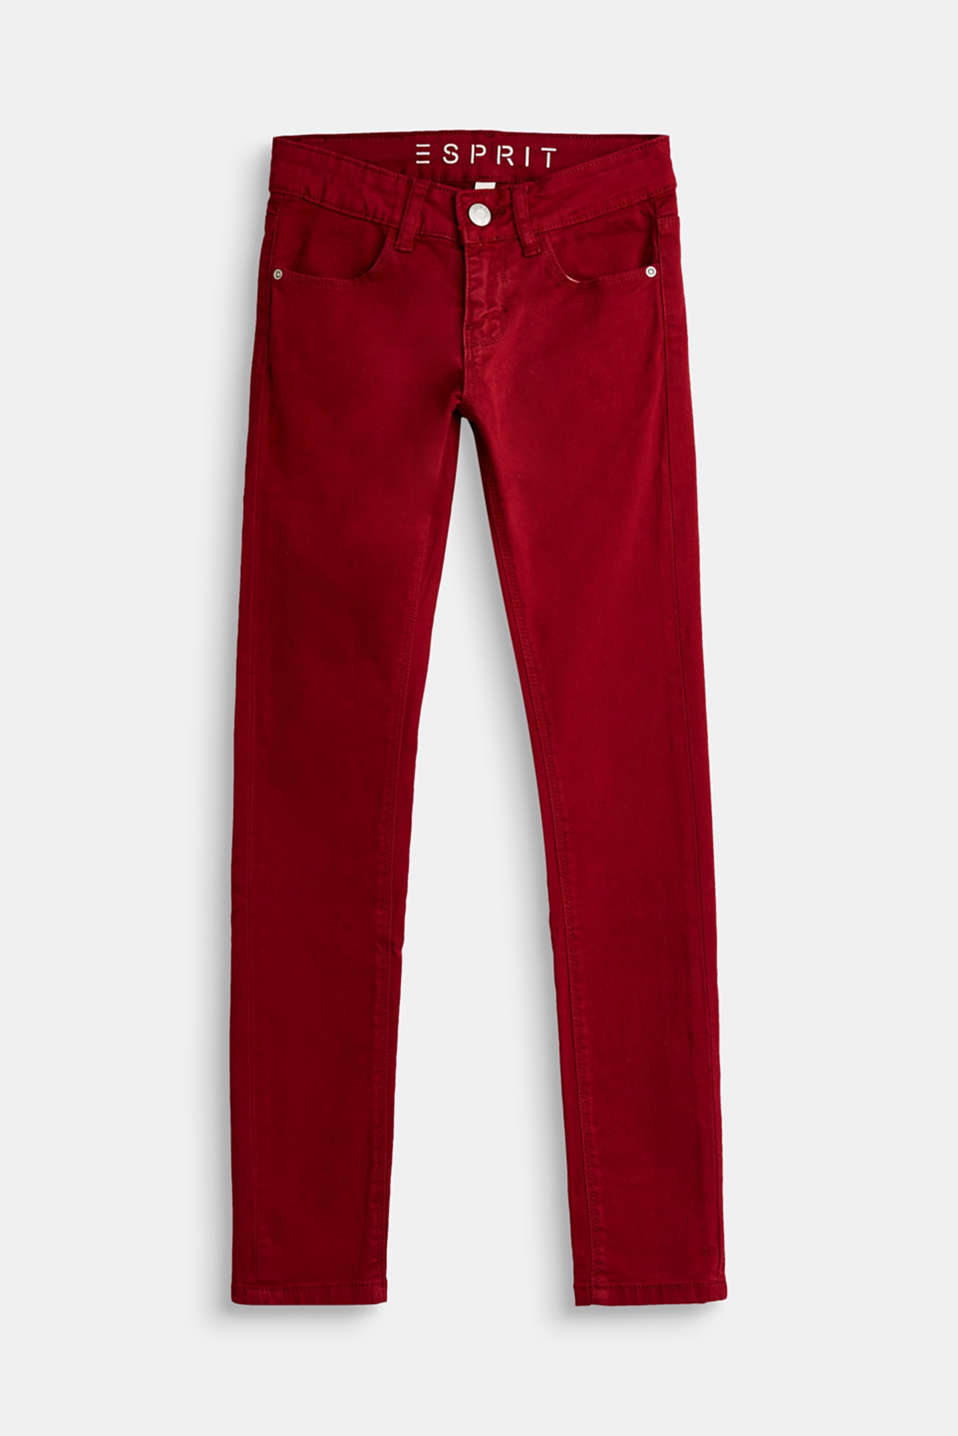 Esprit - Stretch jeans in exciting trend colours